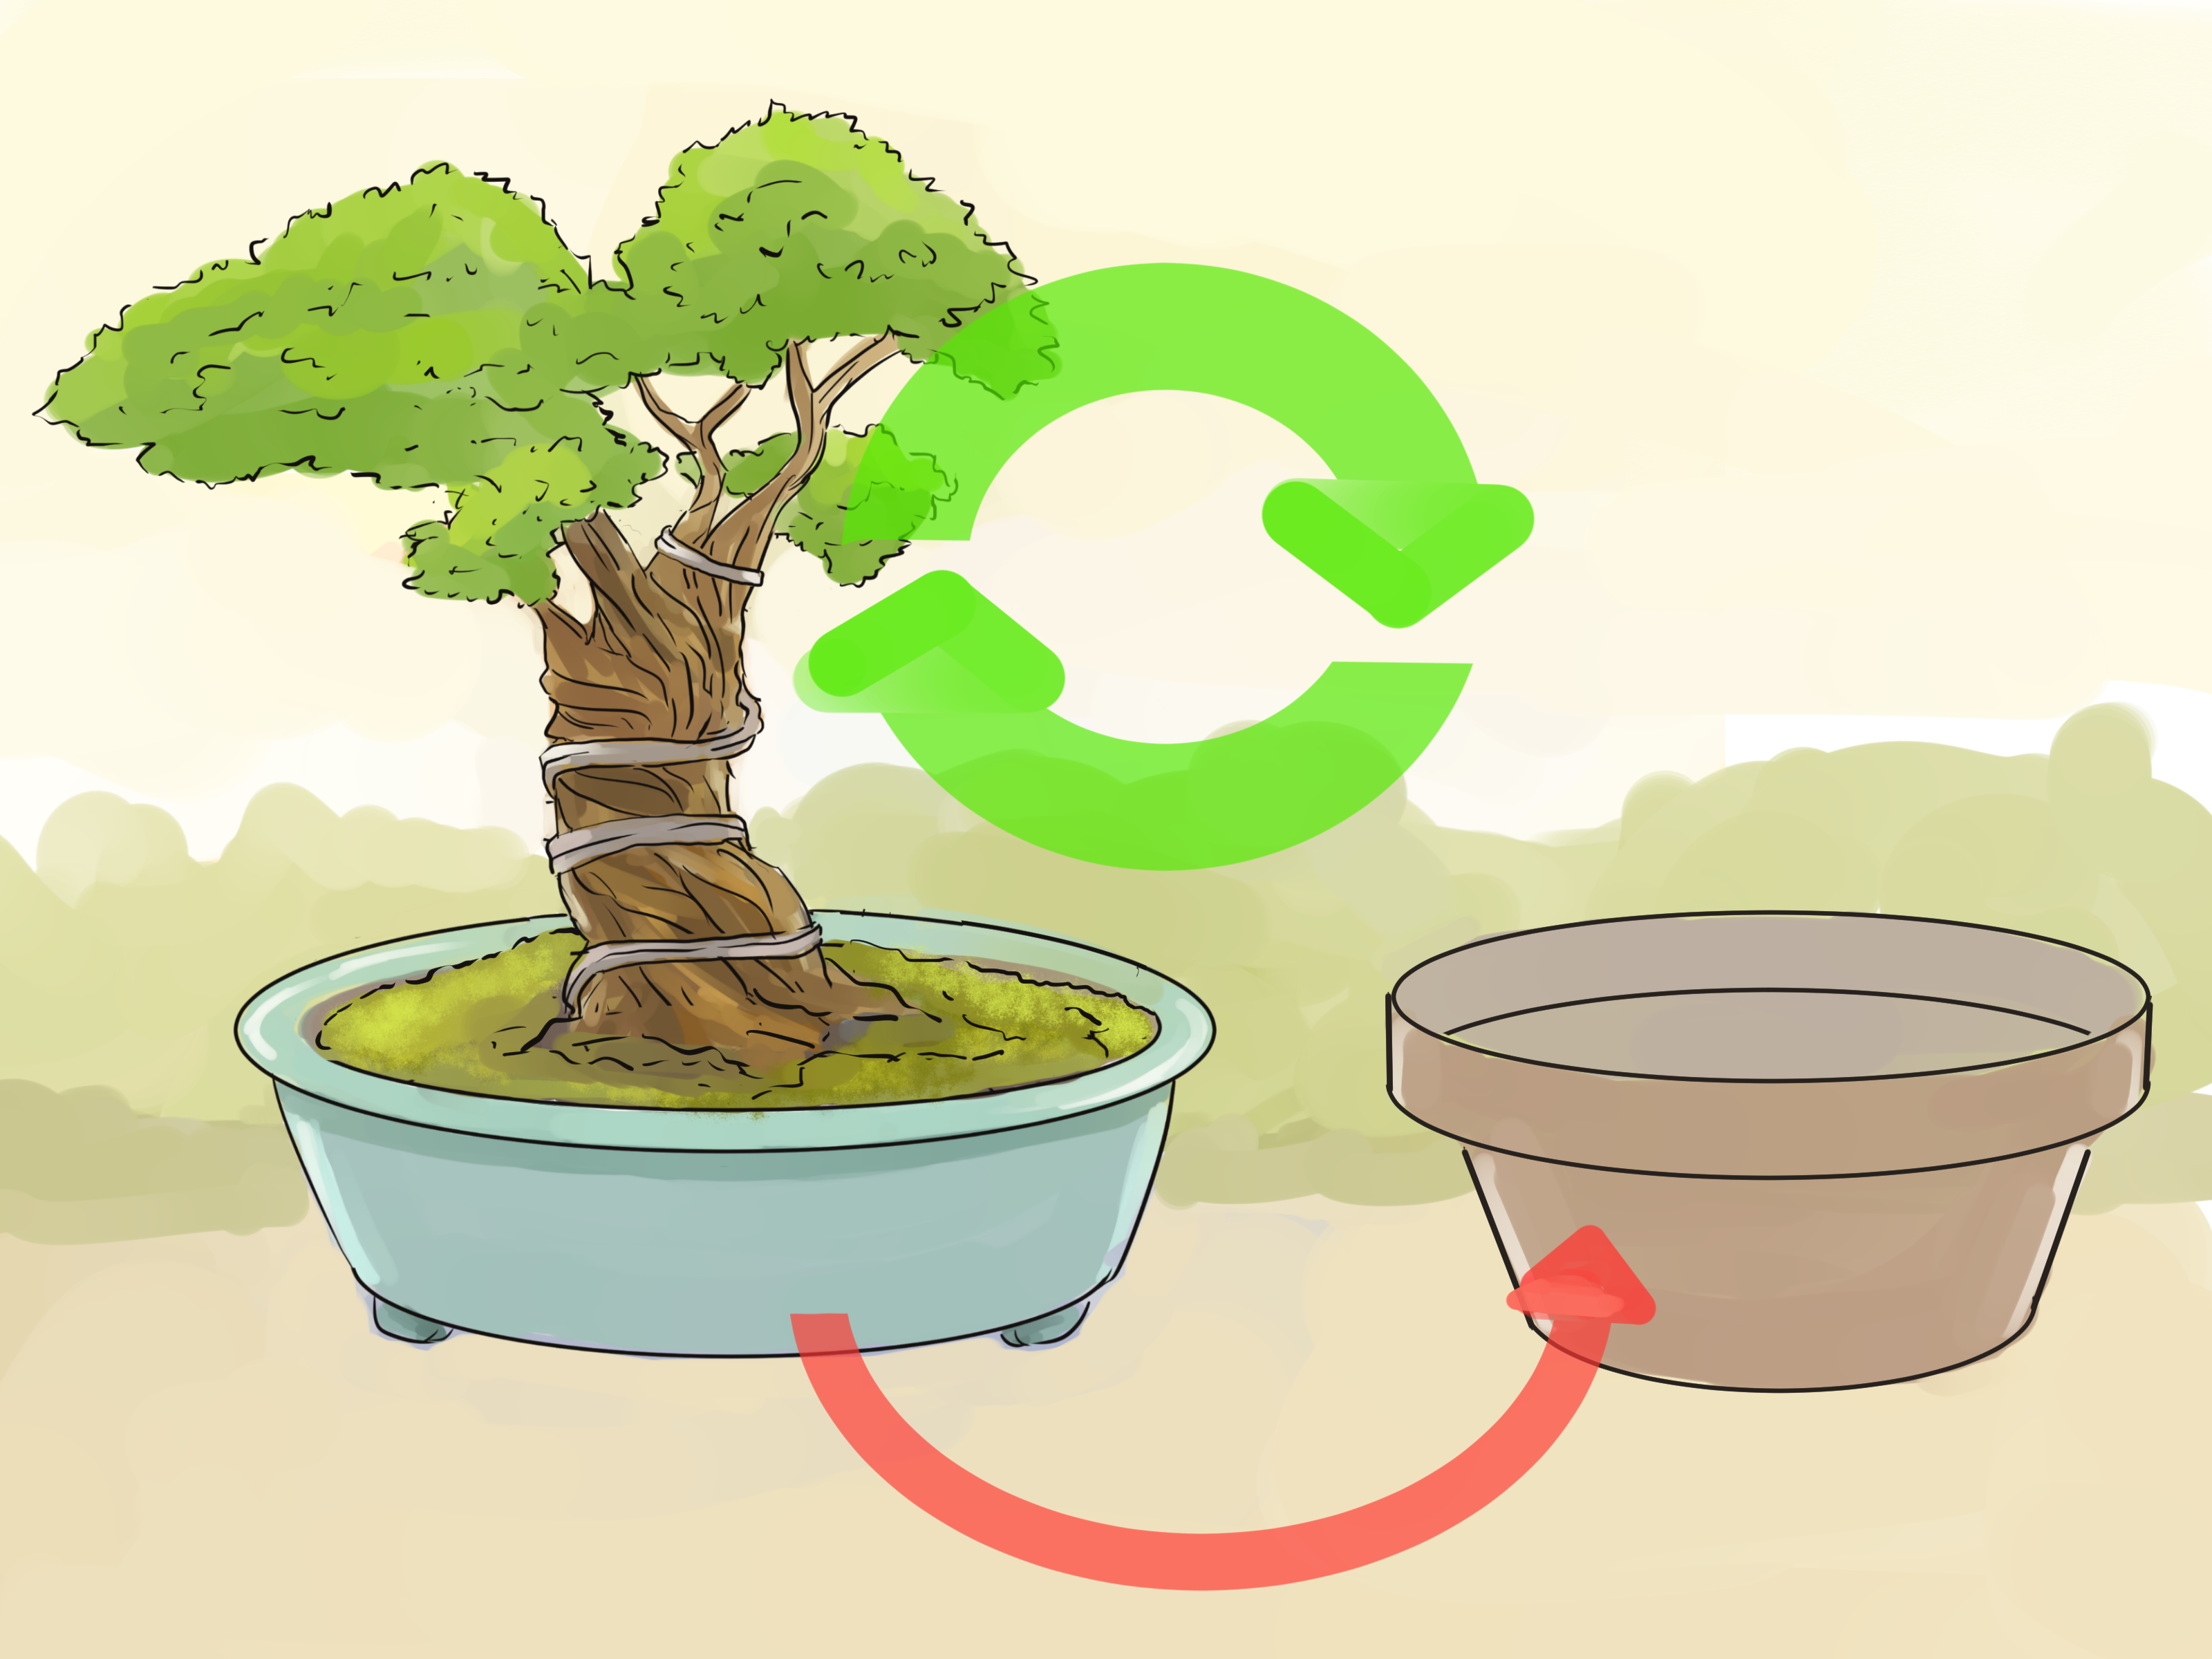 How To Transplant A Bonsai 12 Steps With Pictures Wikihow - Trasplantar Bonsai